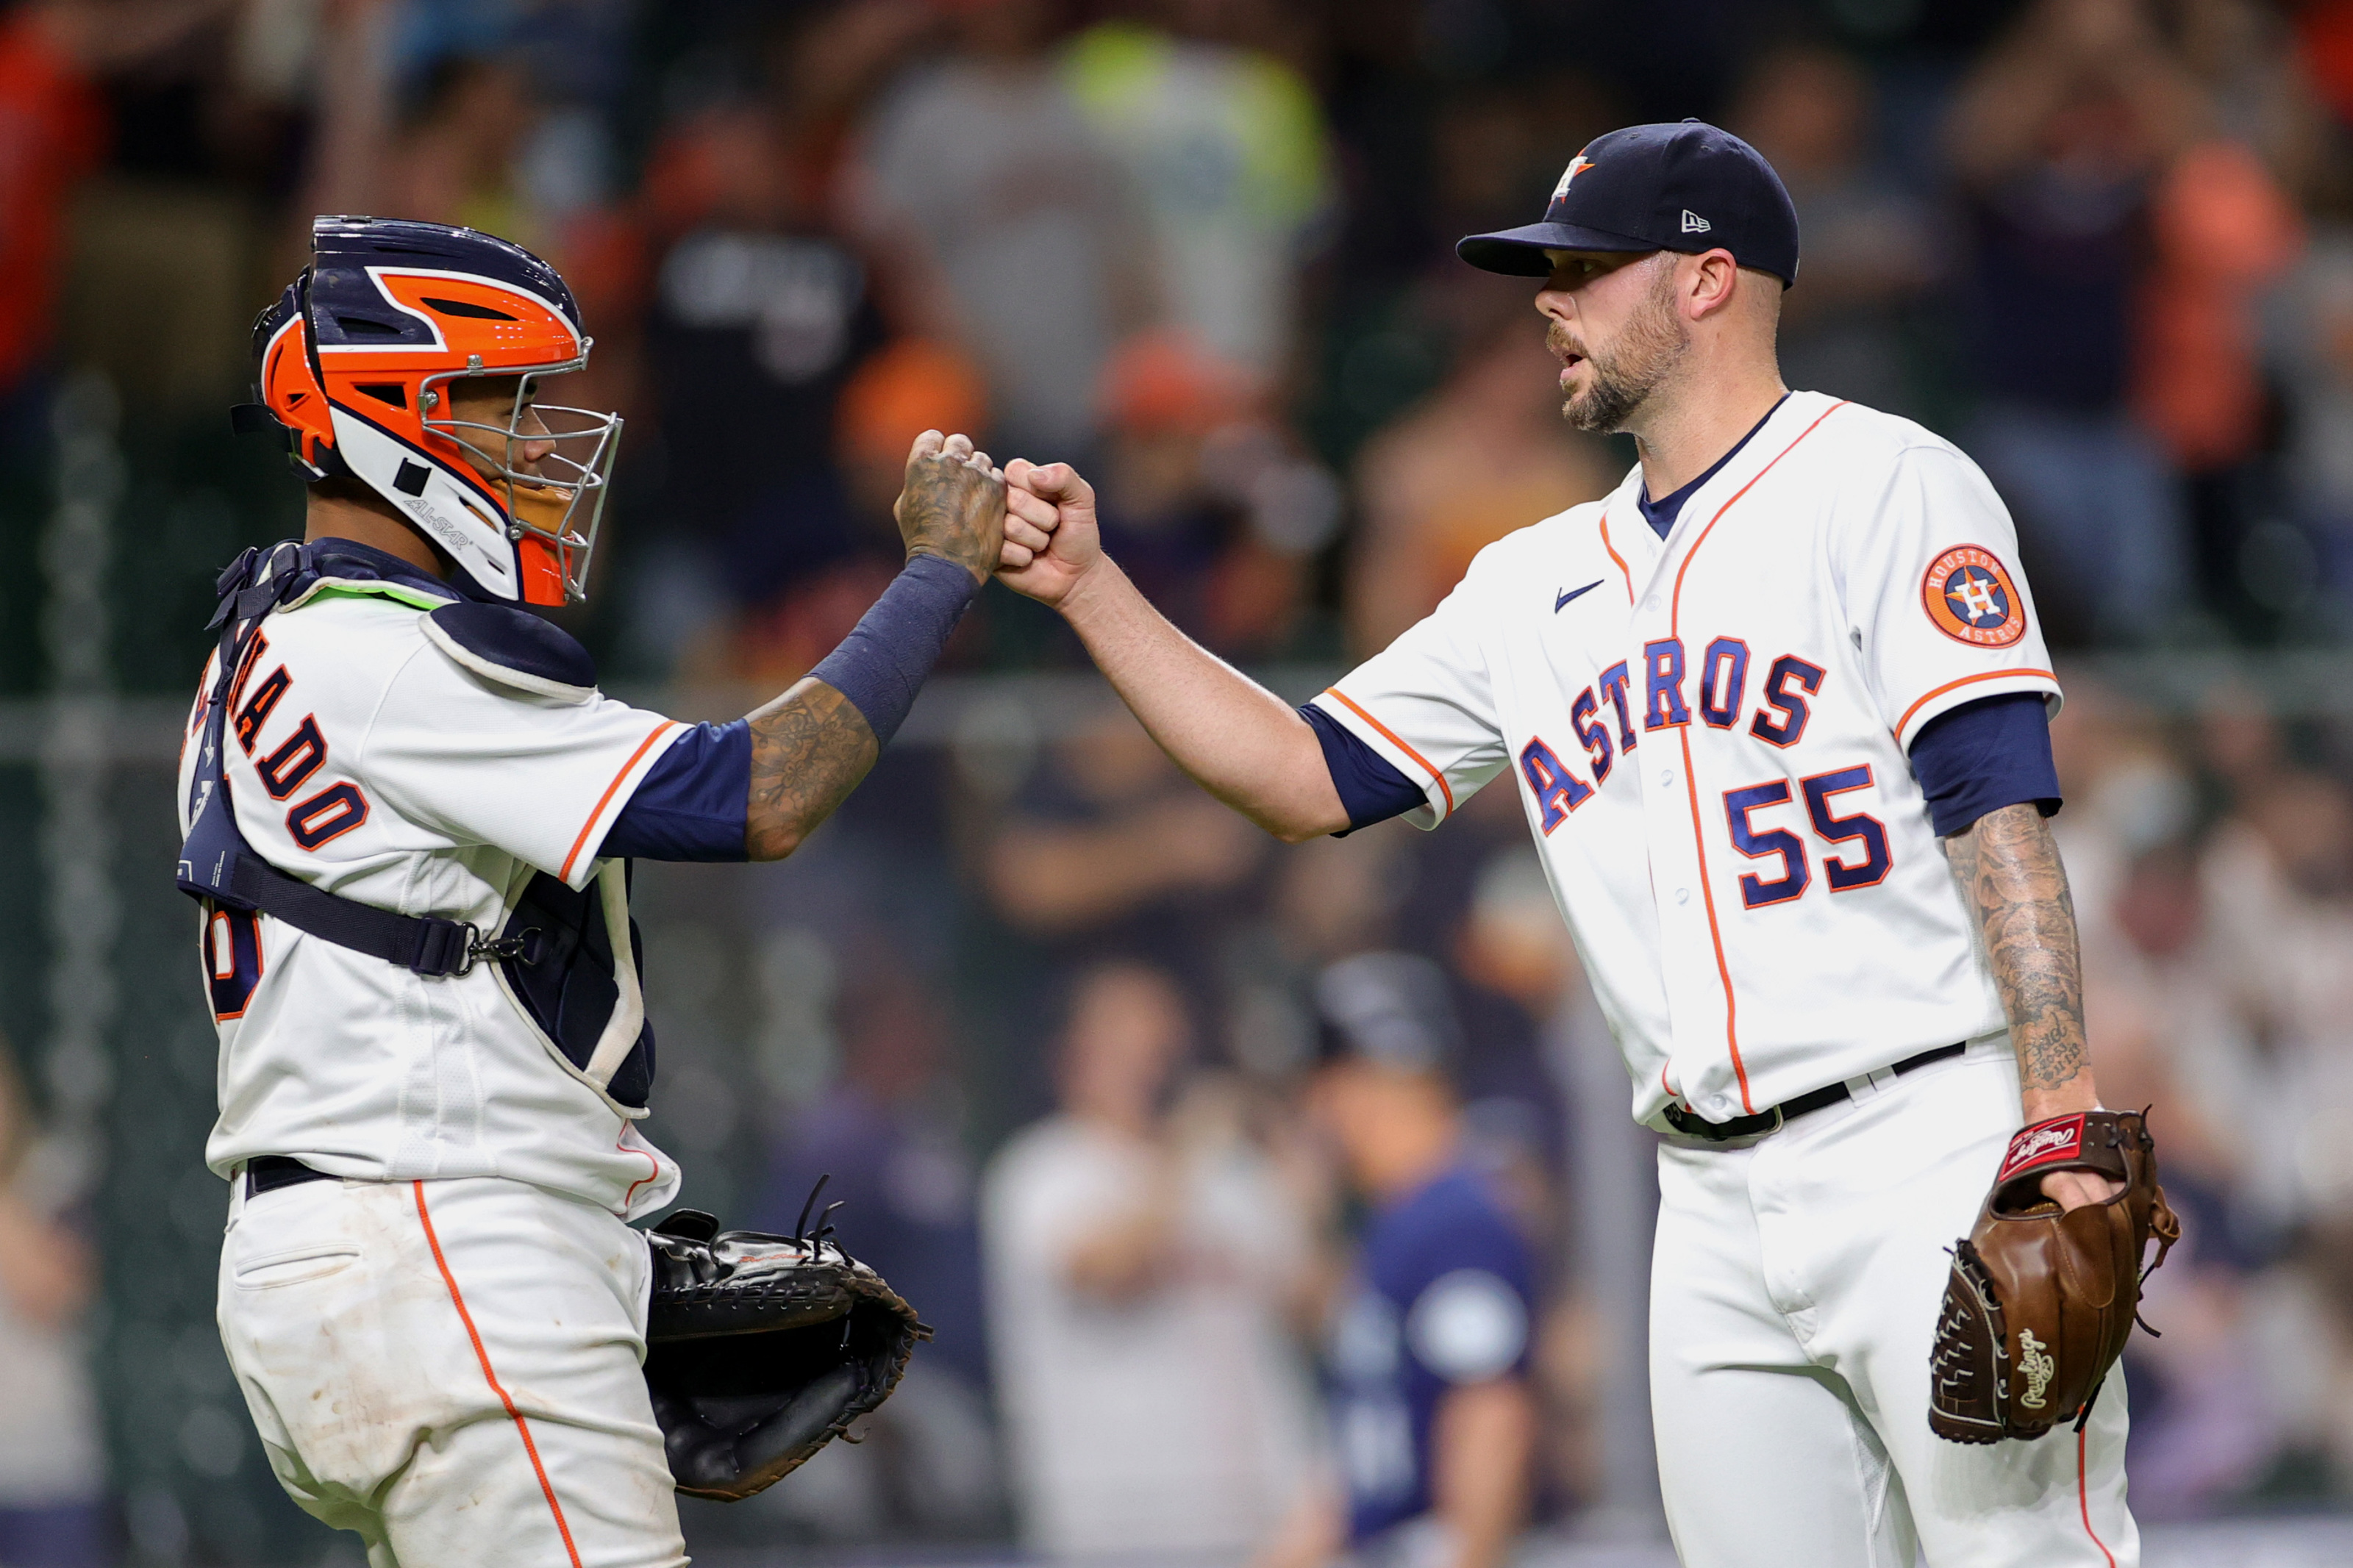 Astros: Ryan Pressly adapting well to closing role in 2021